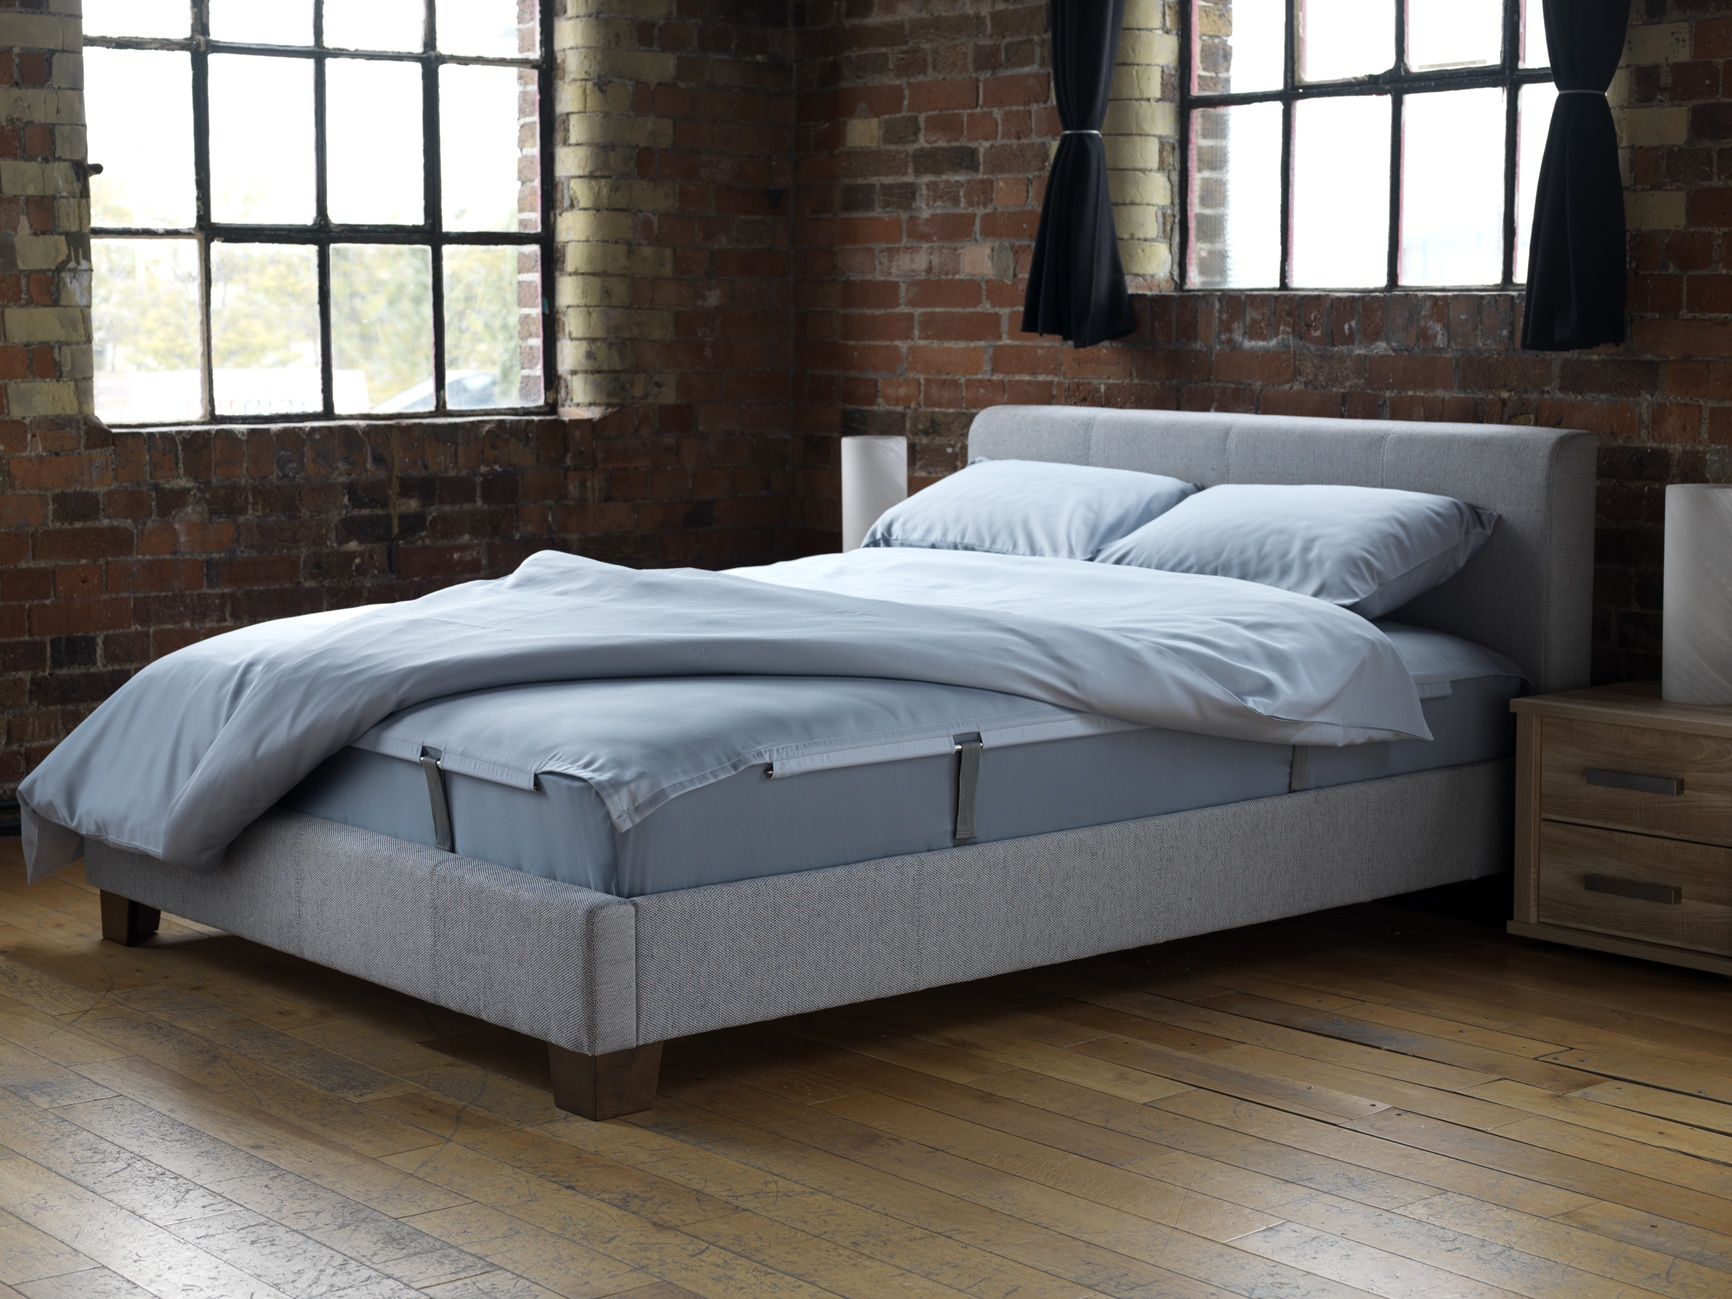 entrepreneur to launch innovative bedding at ideal home show the